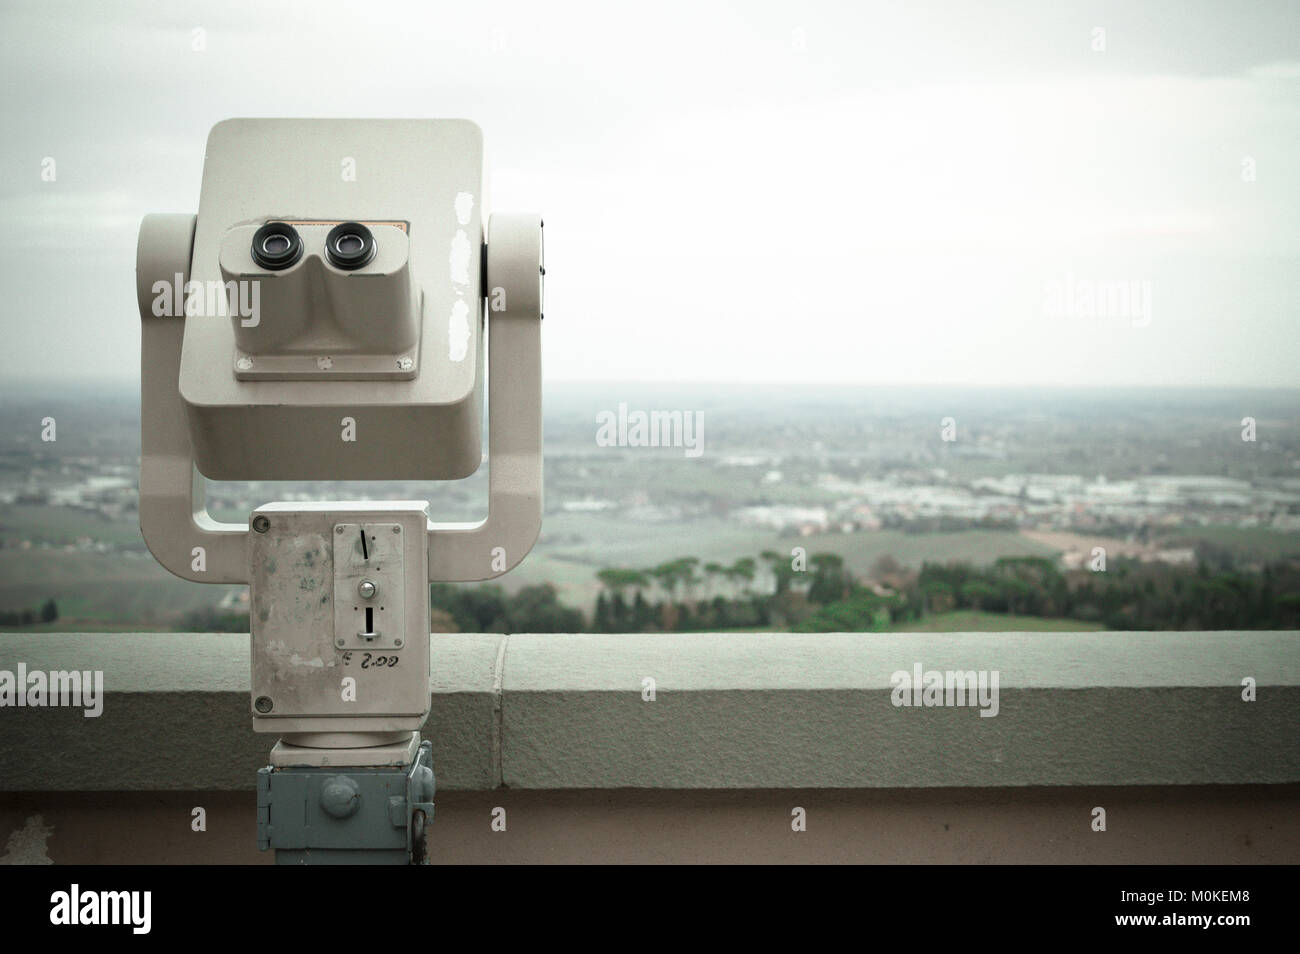 Coin Operated Binocular viewer spying the city from the high position - Stock Image